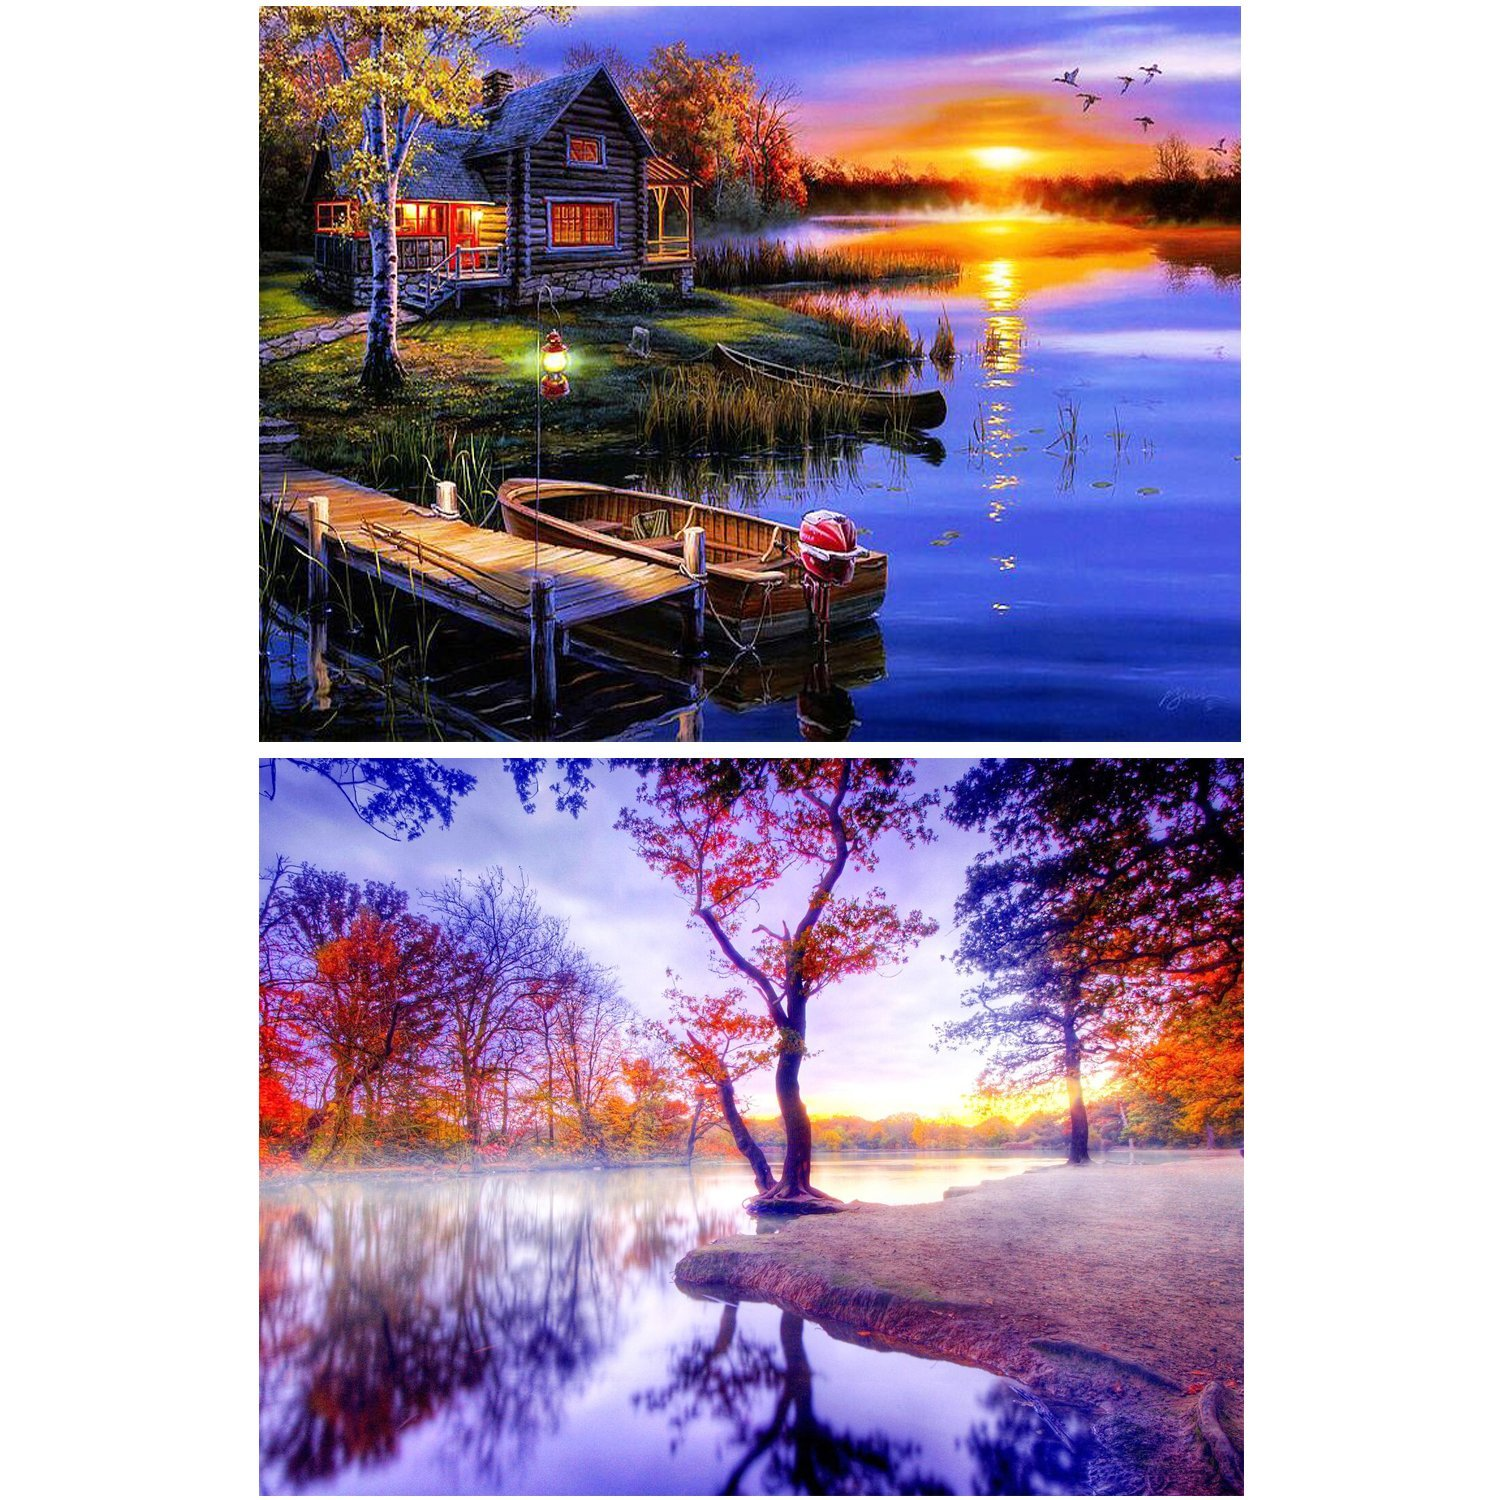 2 Pack DIY 5D Diamond Painting Kit Full Drill Painting Diamond Sticker Stitch Painting Sets Rhinestone Embroidery Set Cross Stitch Arts Craft For Living Room Decoration, Beautiful Scenery 40X30CM/16X12 BUBBLE